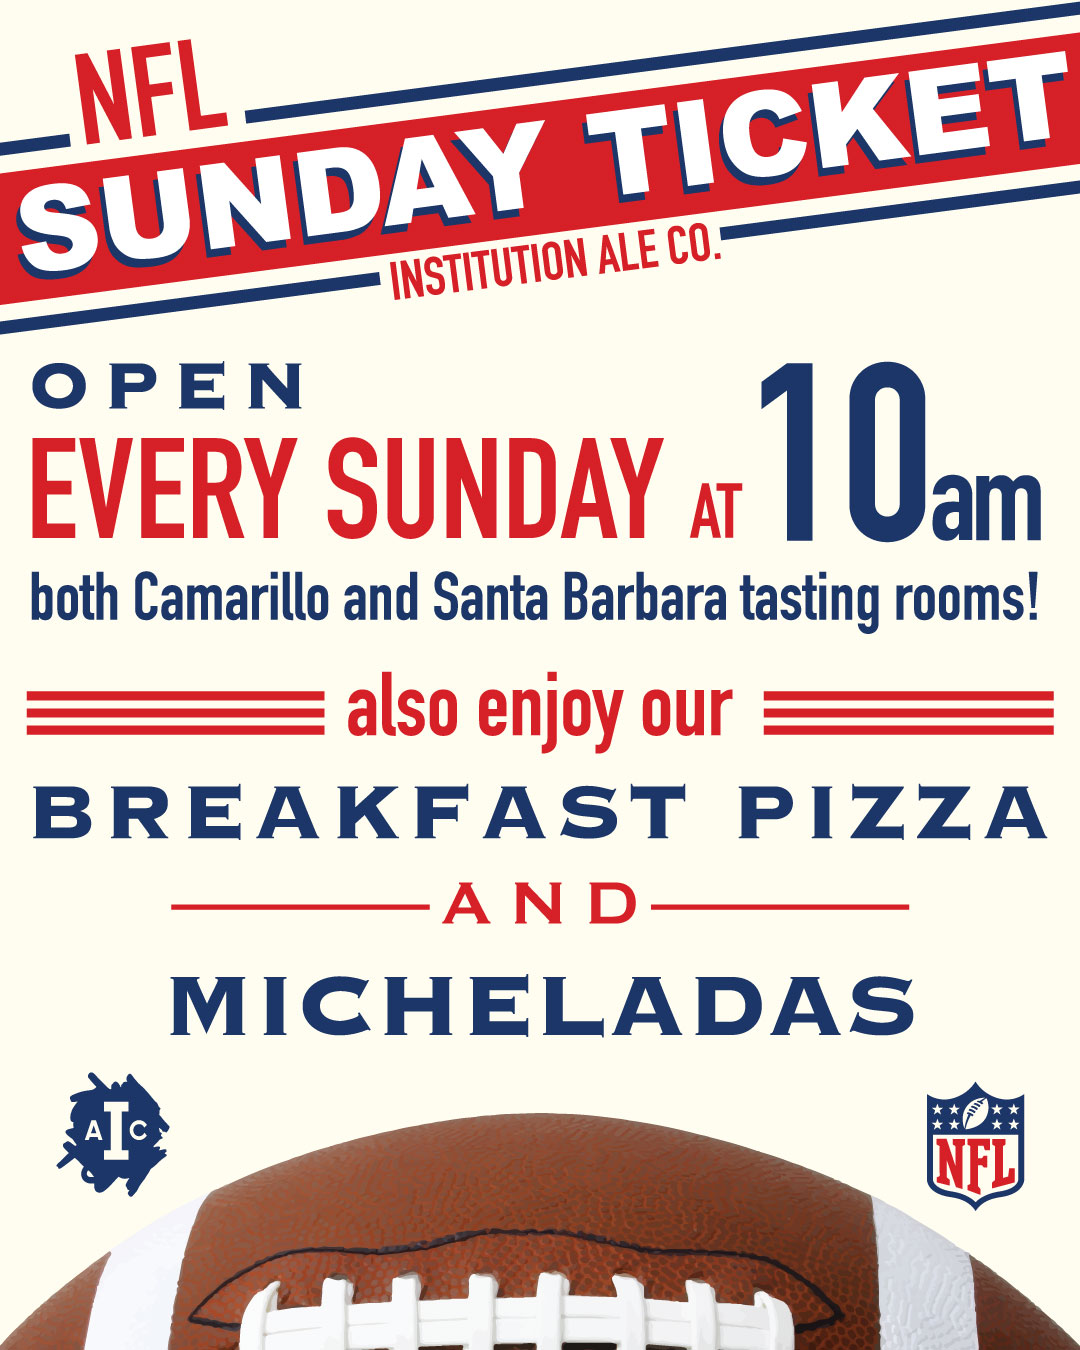 Sunday_Ticket_2019_social_media_file.jpg